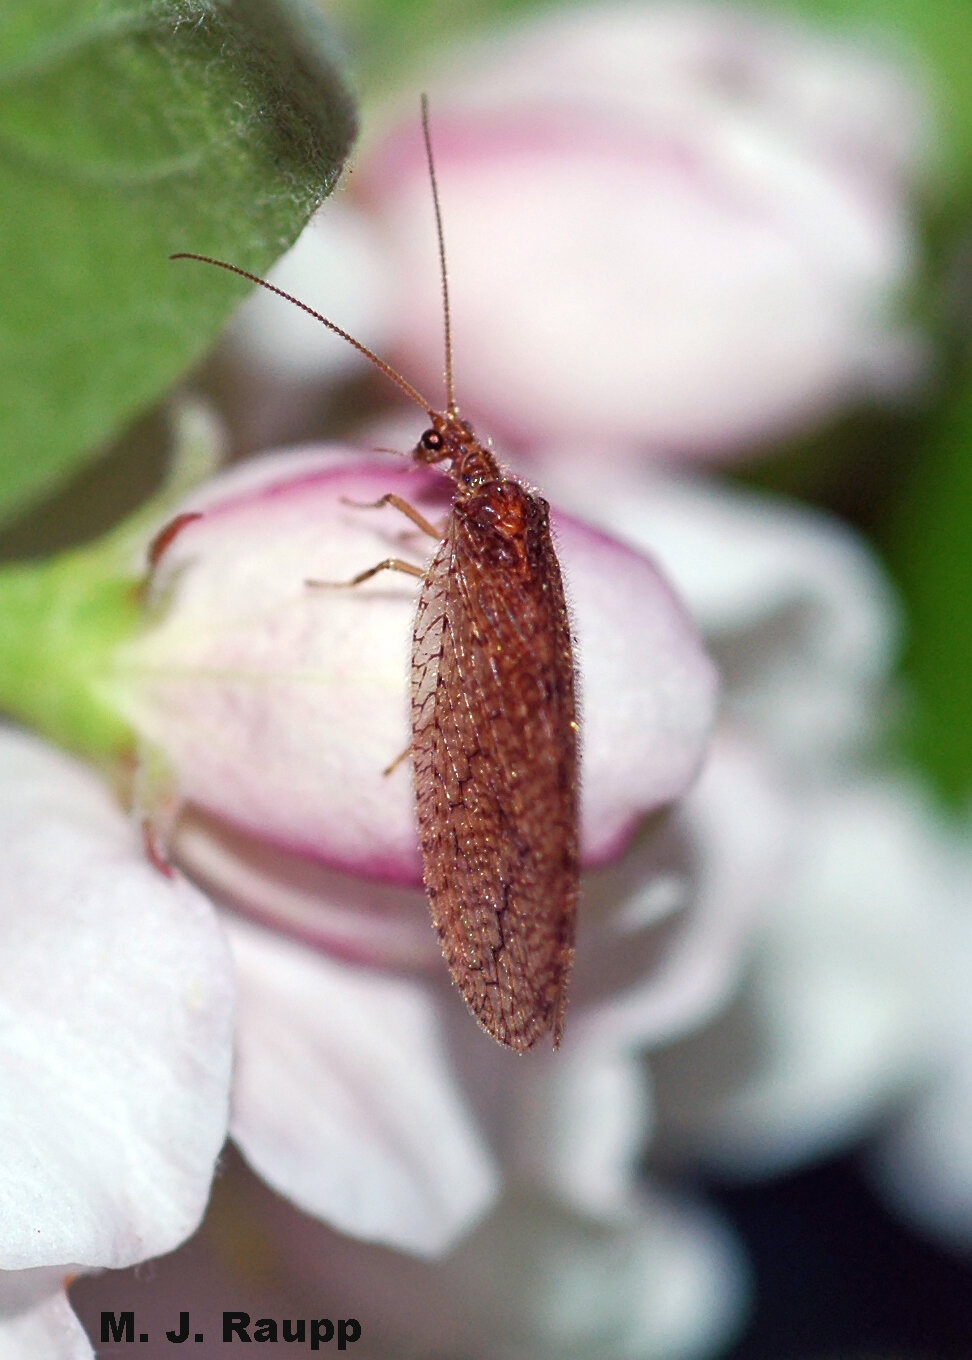 Although not as lovely as the green lacewing, the brown lacewing also spells disaster for many common garden pests.